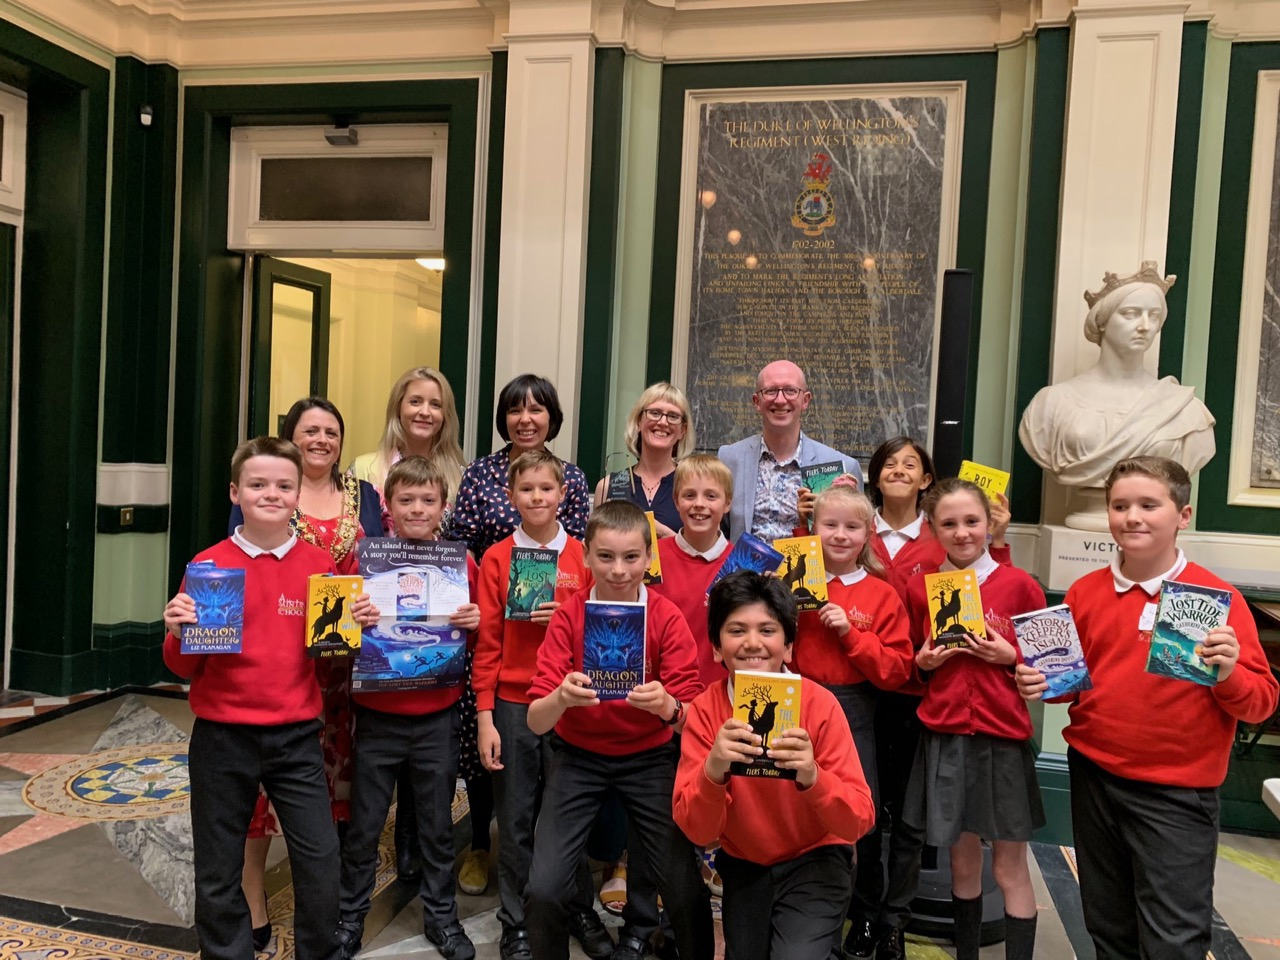 Some of the children who attended, with all the authors!